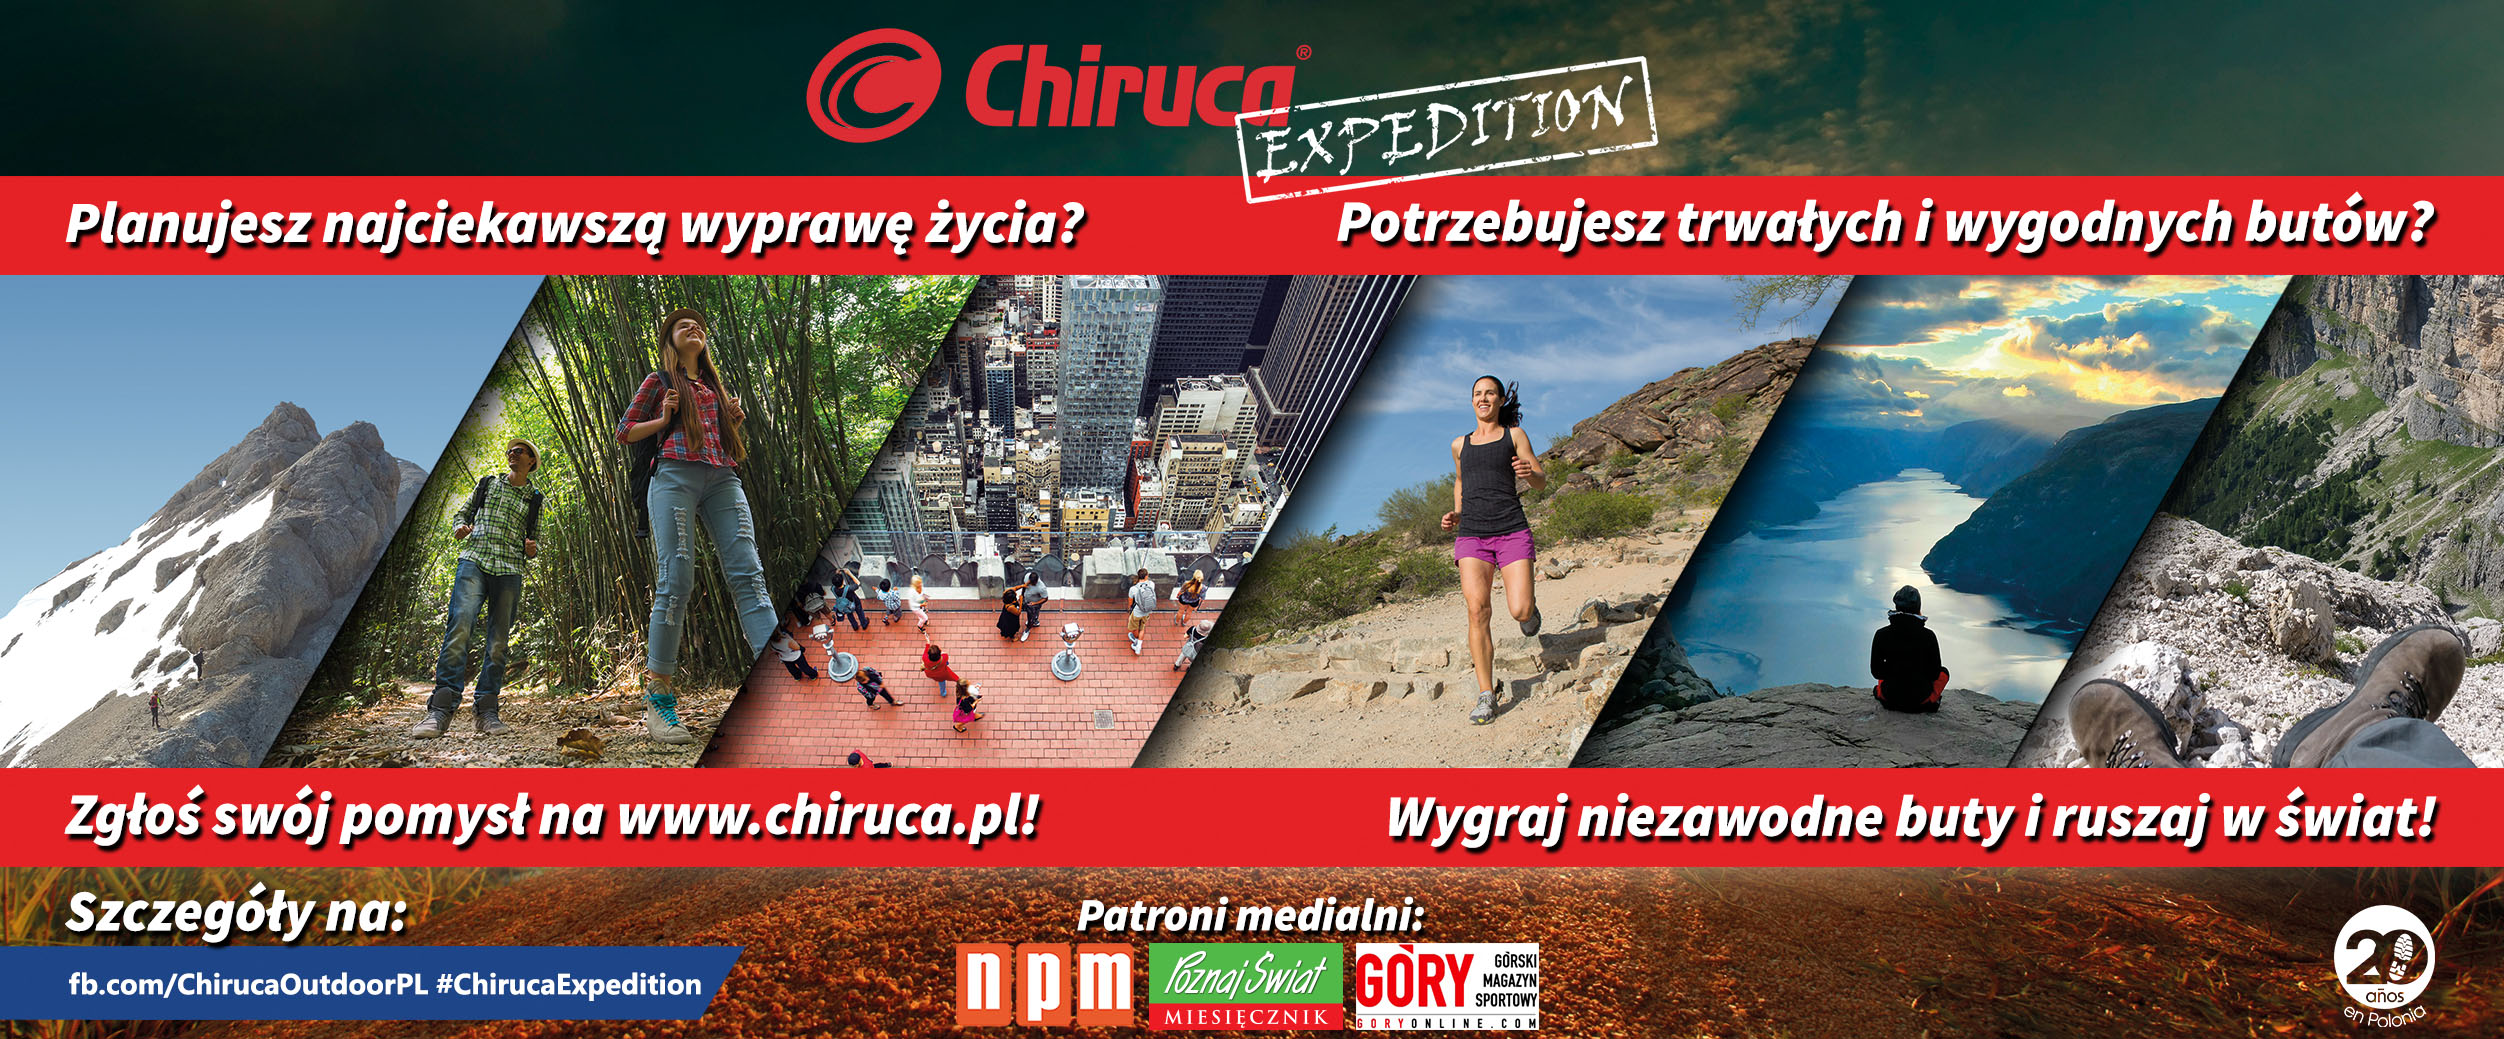 Chiruca EXPEDITION I